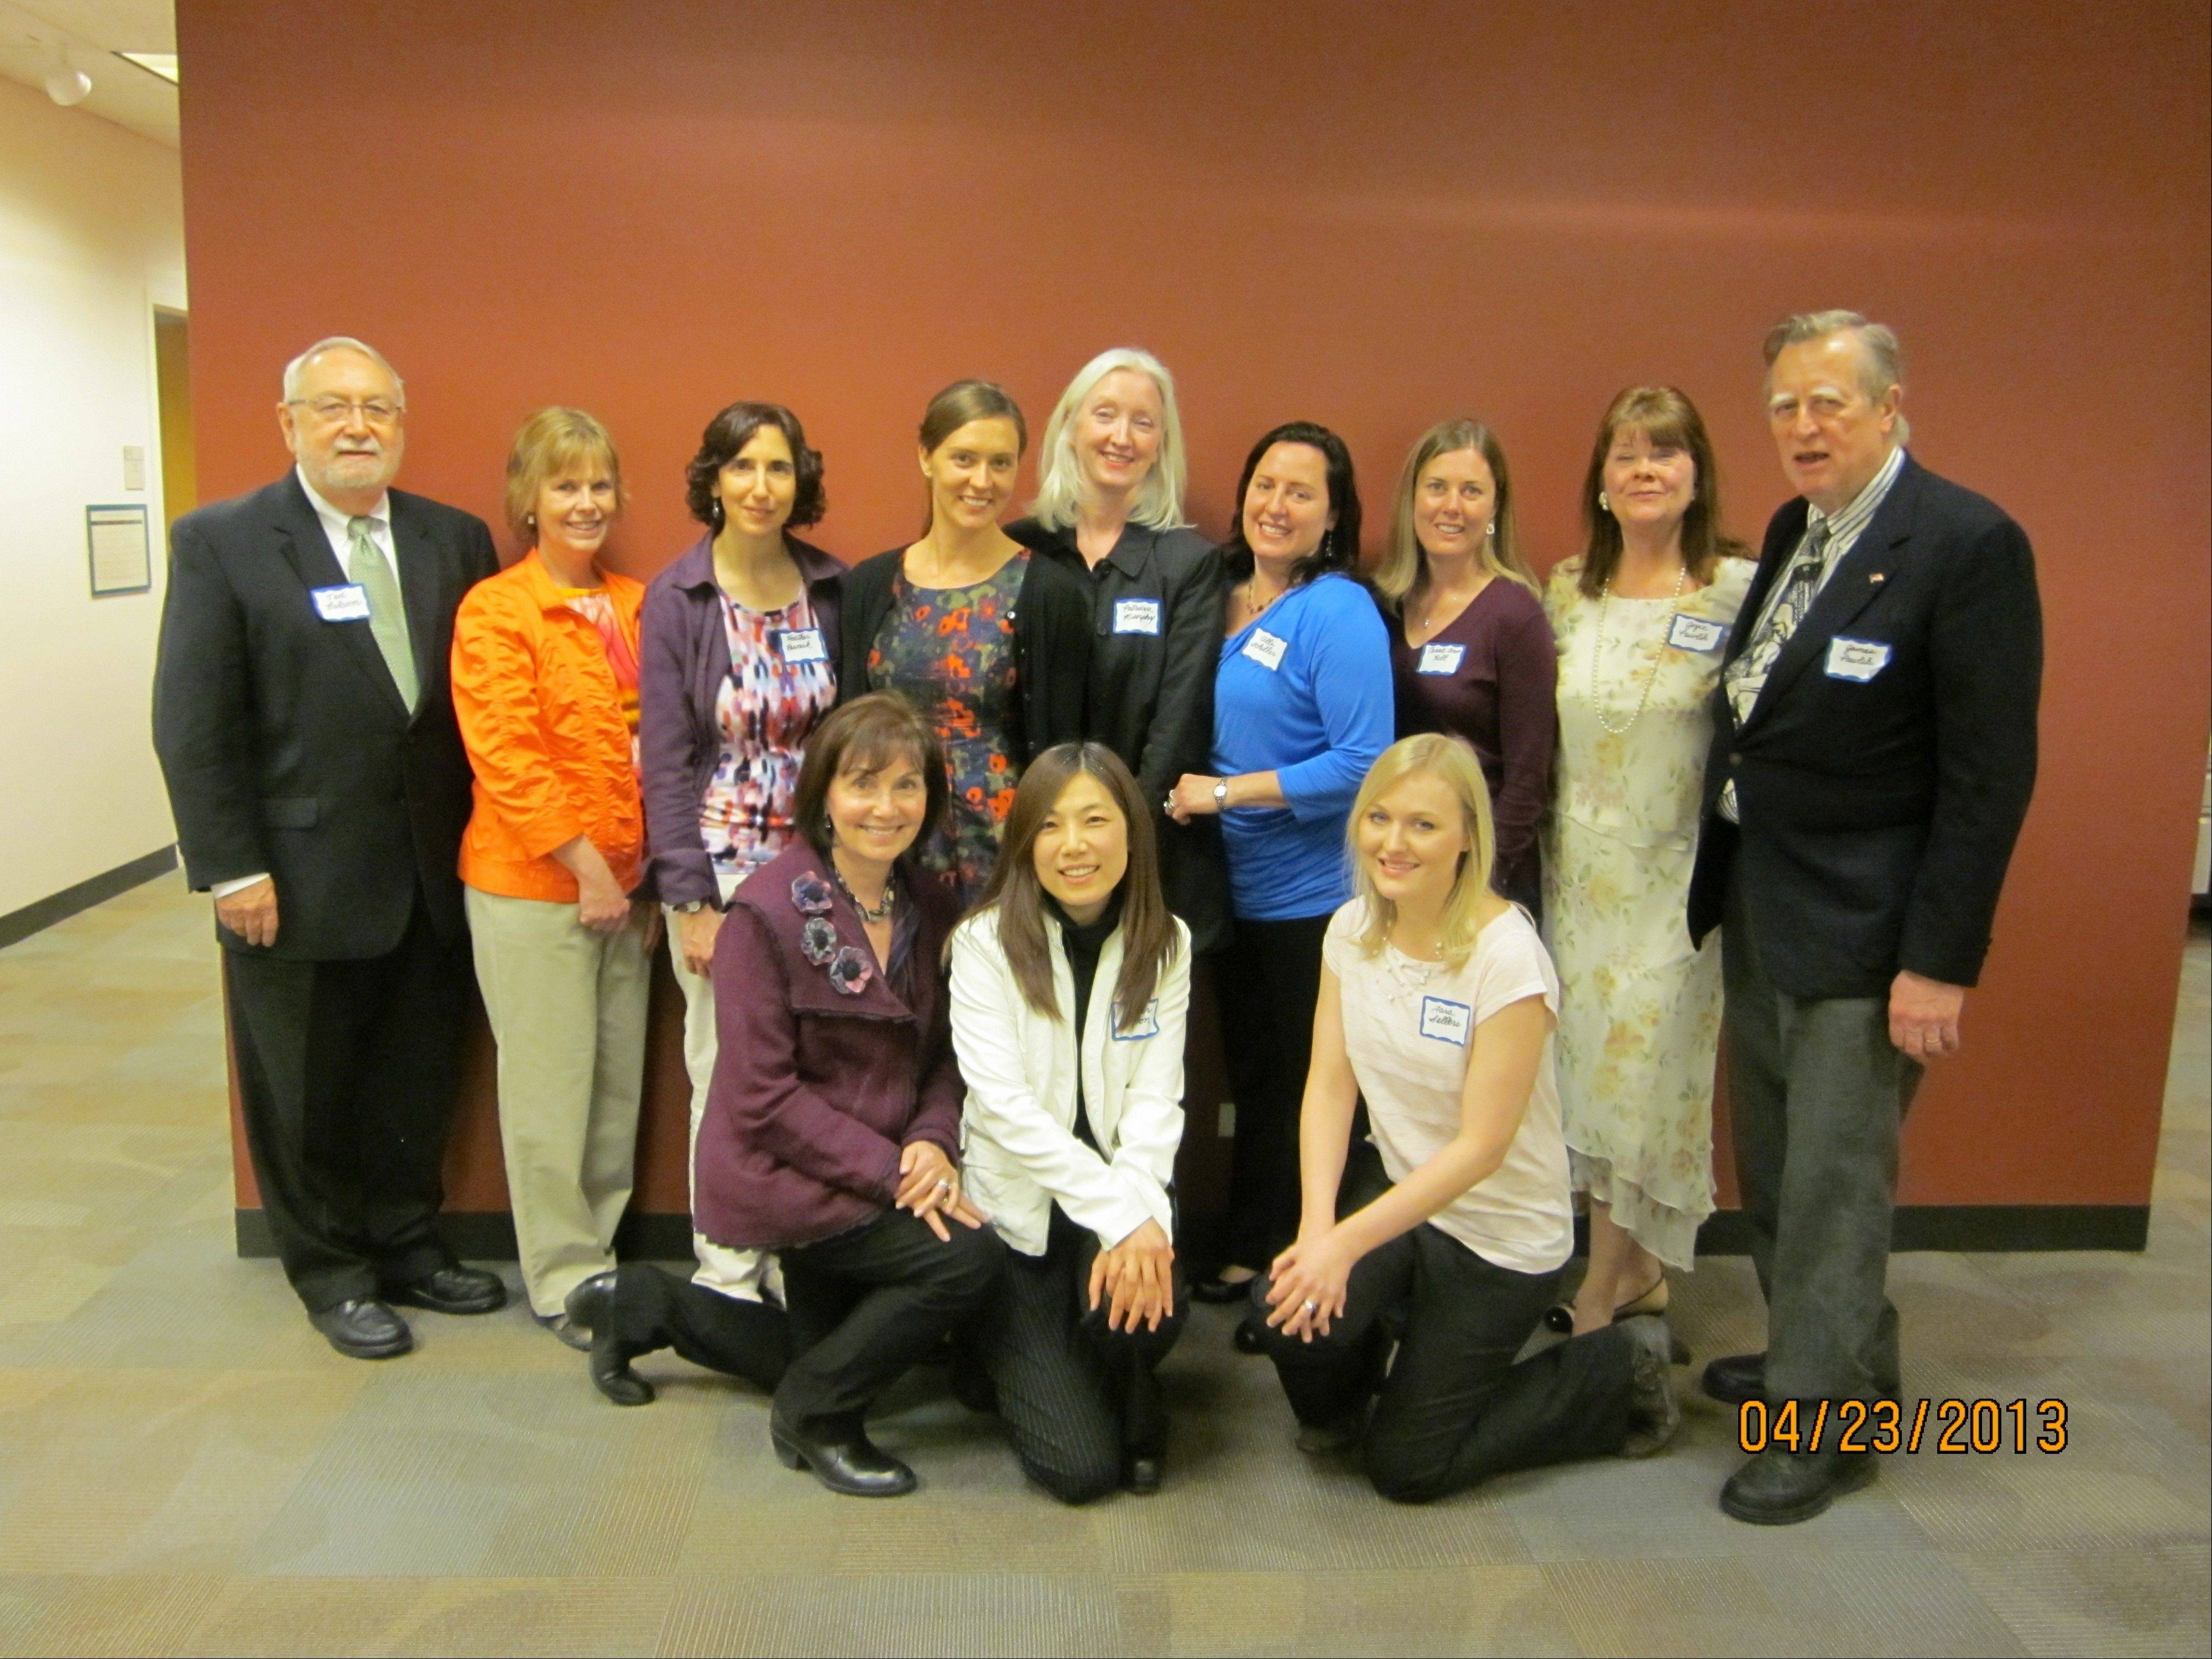 Pictured with author Vanessa Diffenbaugh are Alli Schiller, Carol K Wells, Esther Moon, Carrie Ann Hill, Heather Resnick, James R. Pawlik, Joyce C. Pawlik, Patty Colabuono, Tara Sellers, Patricia J. Murphy, and Ted Balcom, who served as host and moderator for the evening program.